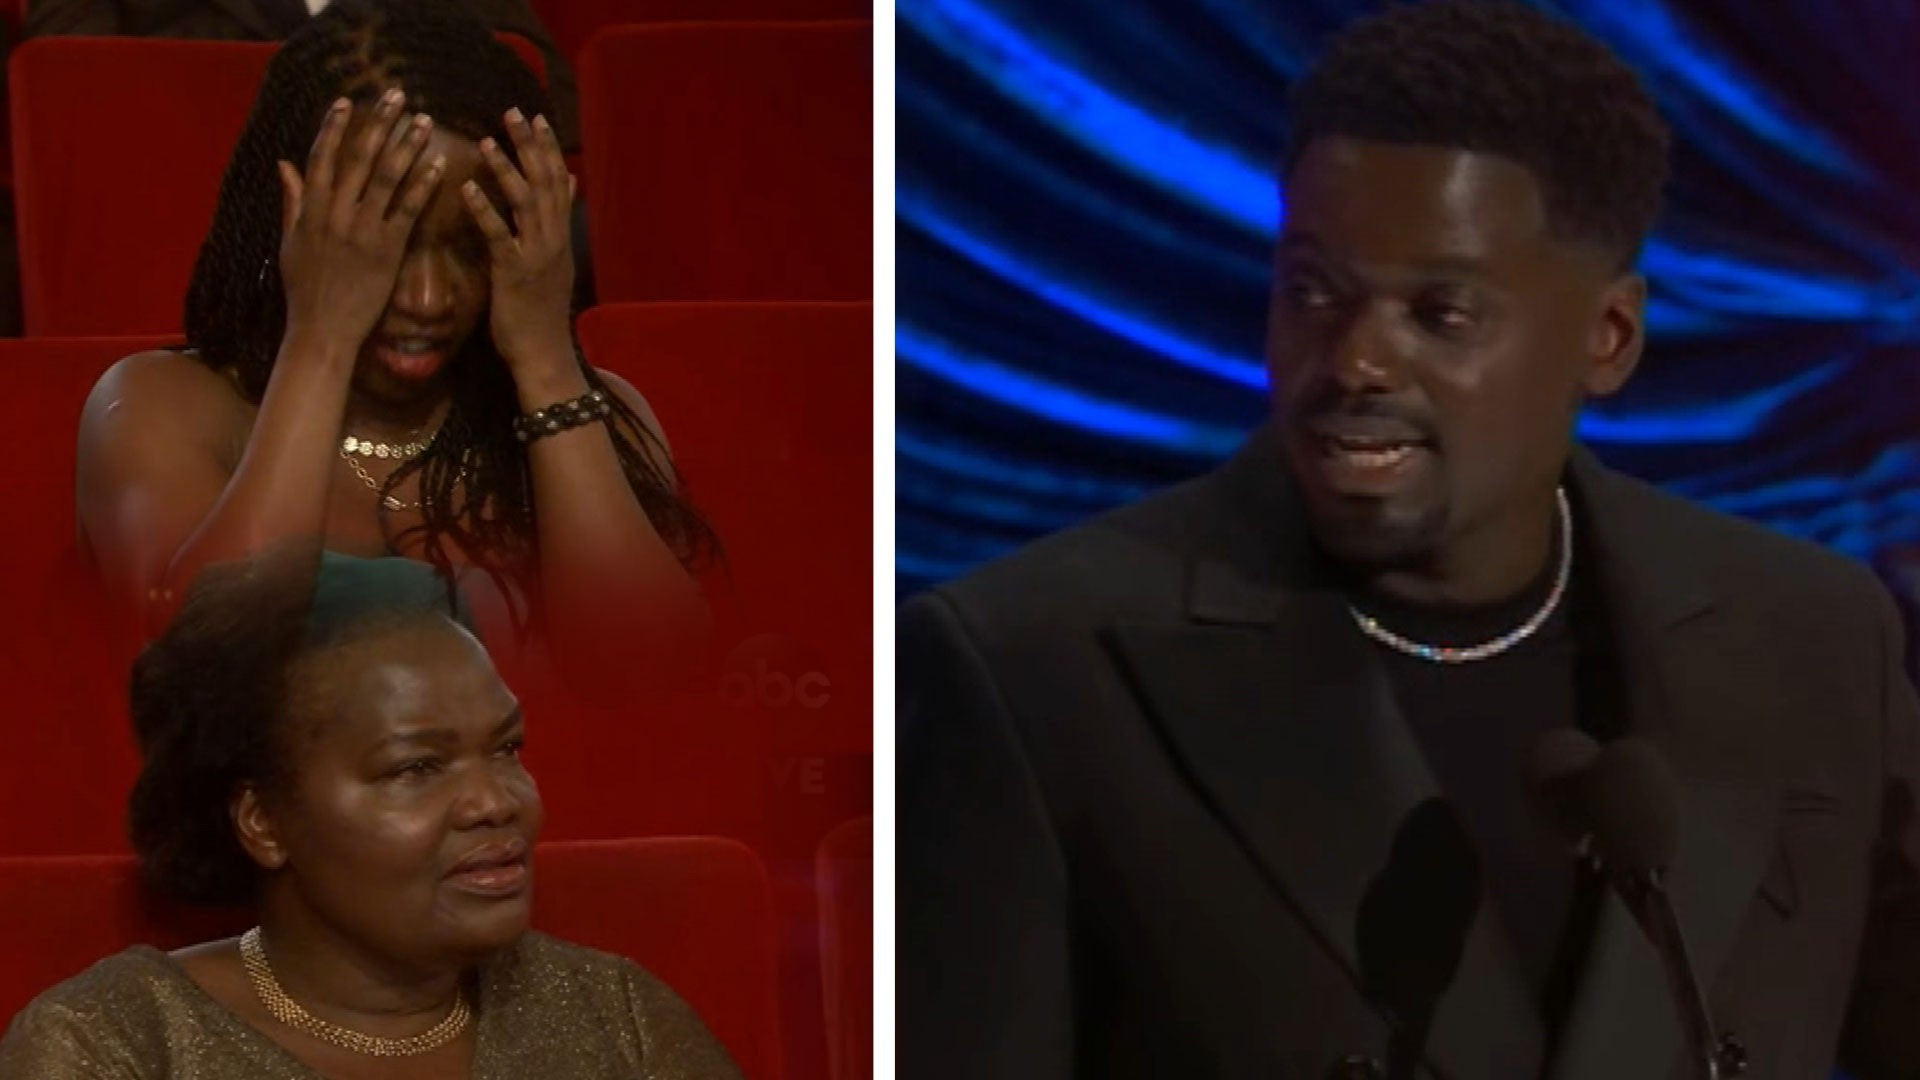 Daniel Kaluuyas mom's adorable mortification to him thanking her and his dad for having s3x goes viral